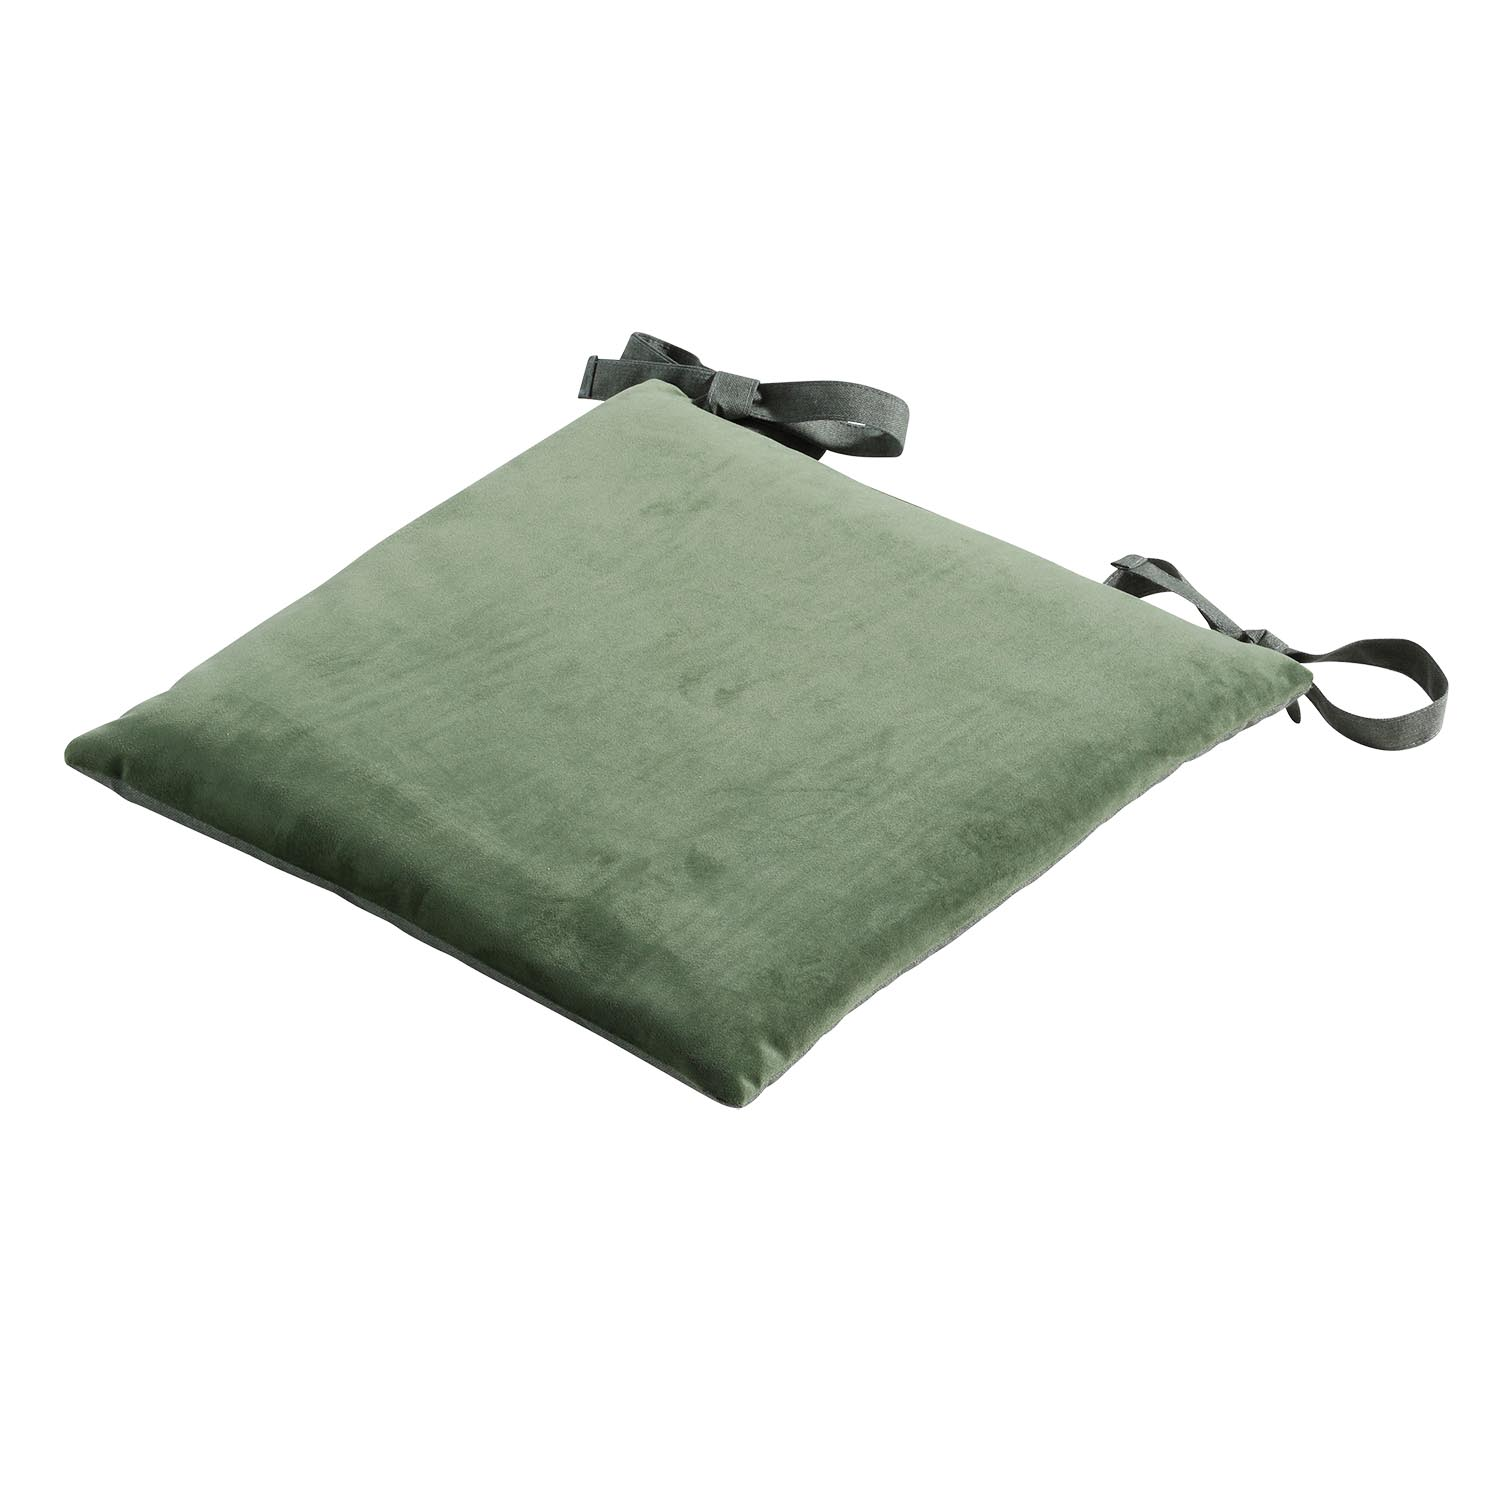 Zitkussen Toscane 46x46cm - Outdoor Velvet/oxford green